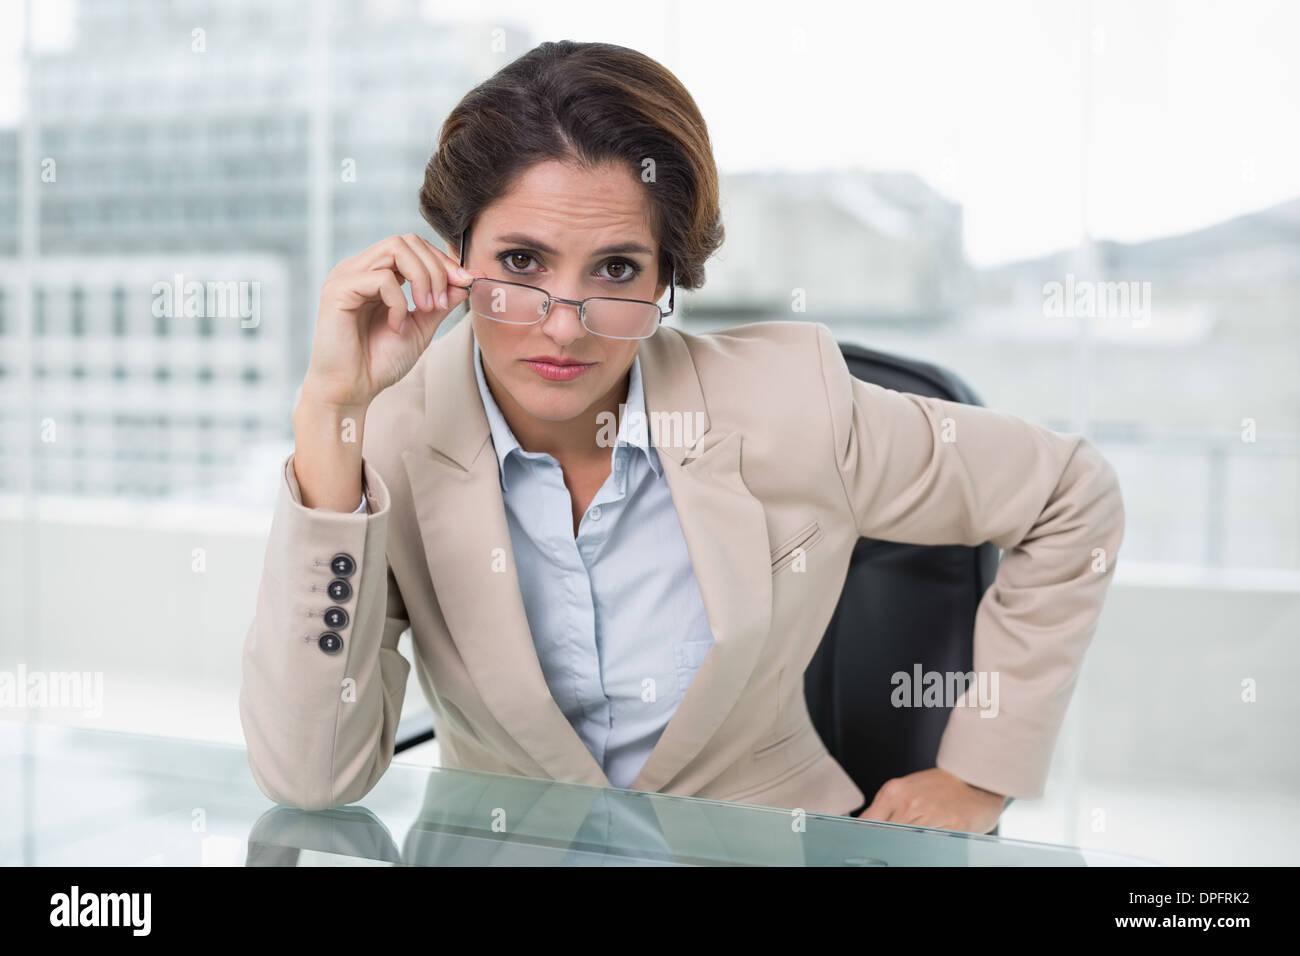 Dubious businesswoman looking at camera - Stock Image